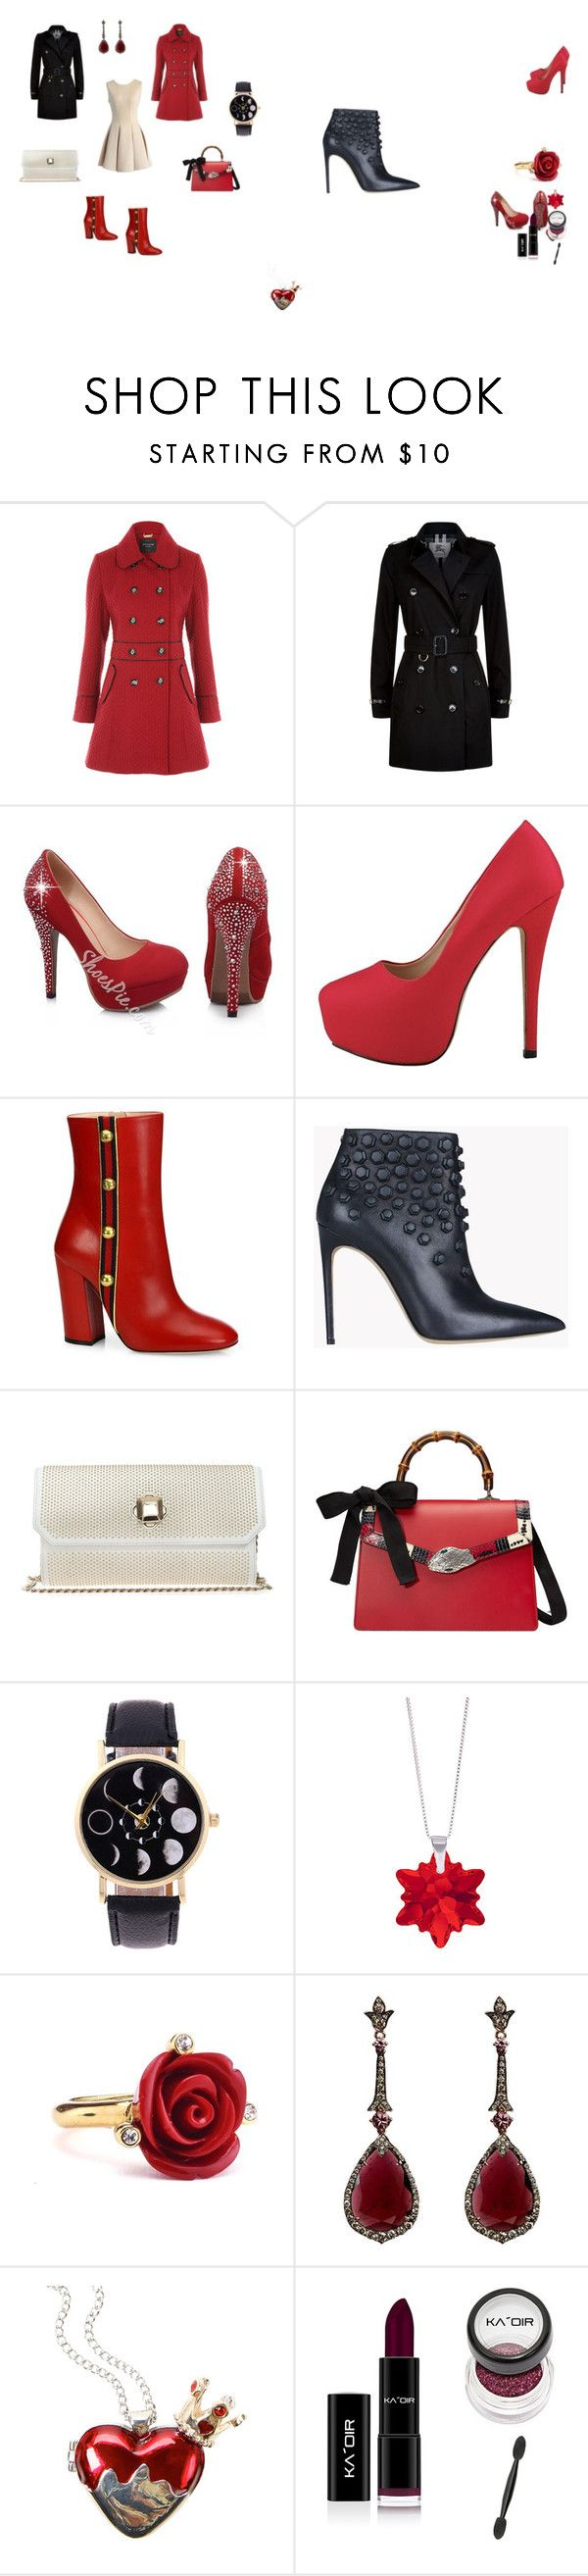 """Women set"" by tada-selo123 ❤ liked on Polyvore featuring Chicwish, Burberry, Gucci, Dsquared2, Elie Saab, Sevil Designs, Oscar de la Renta, Annoushka and Disney"